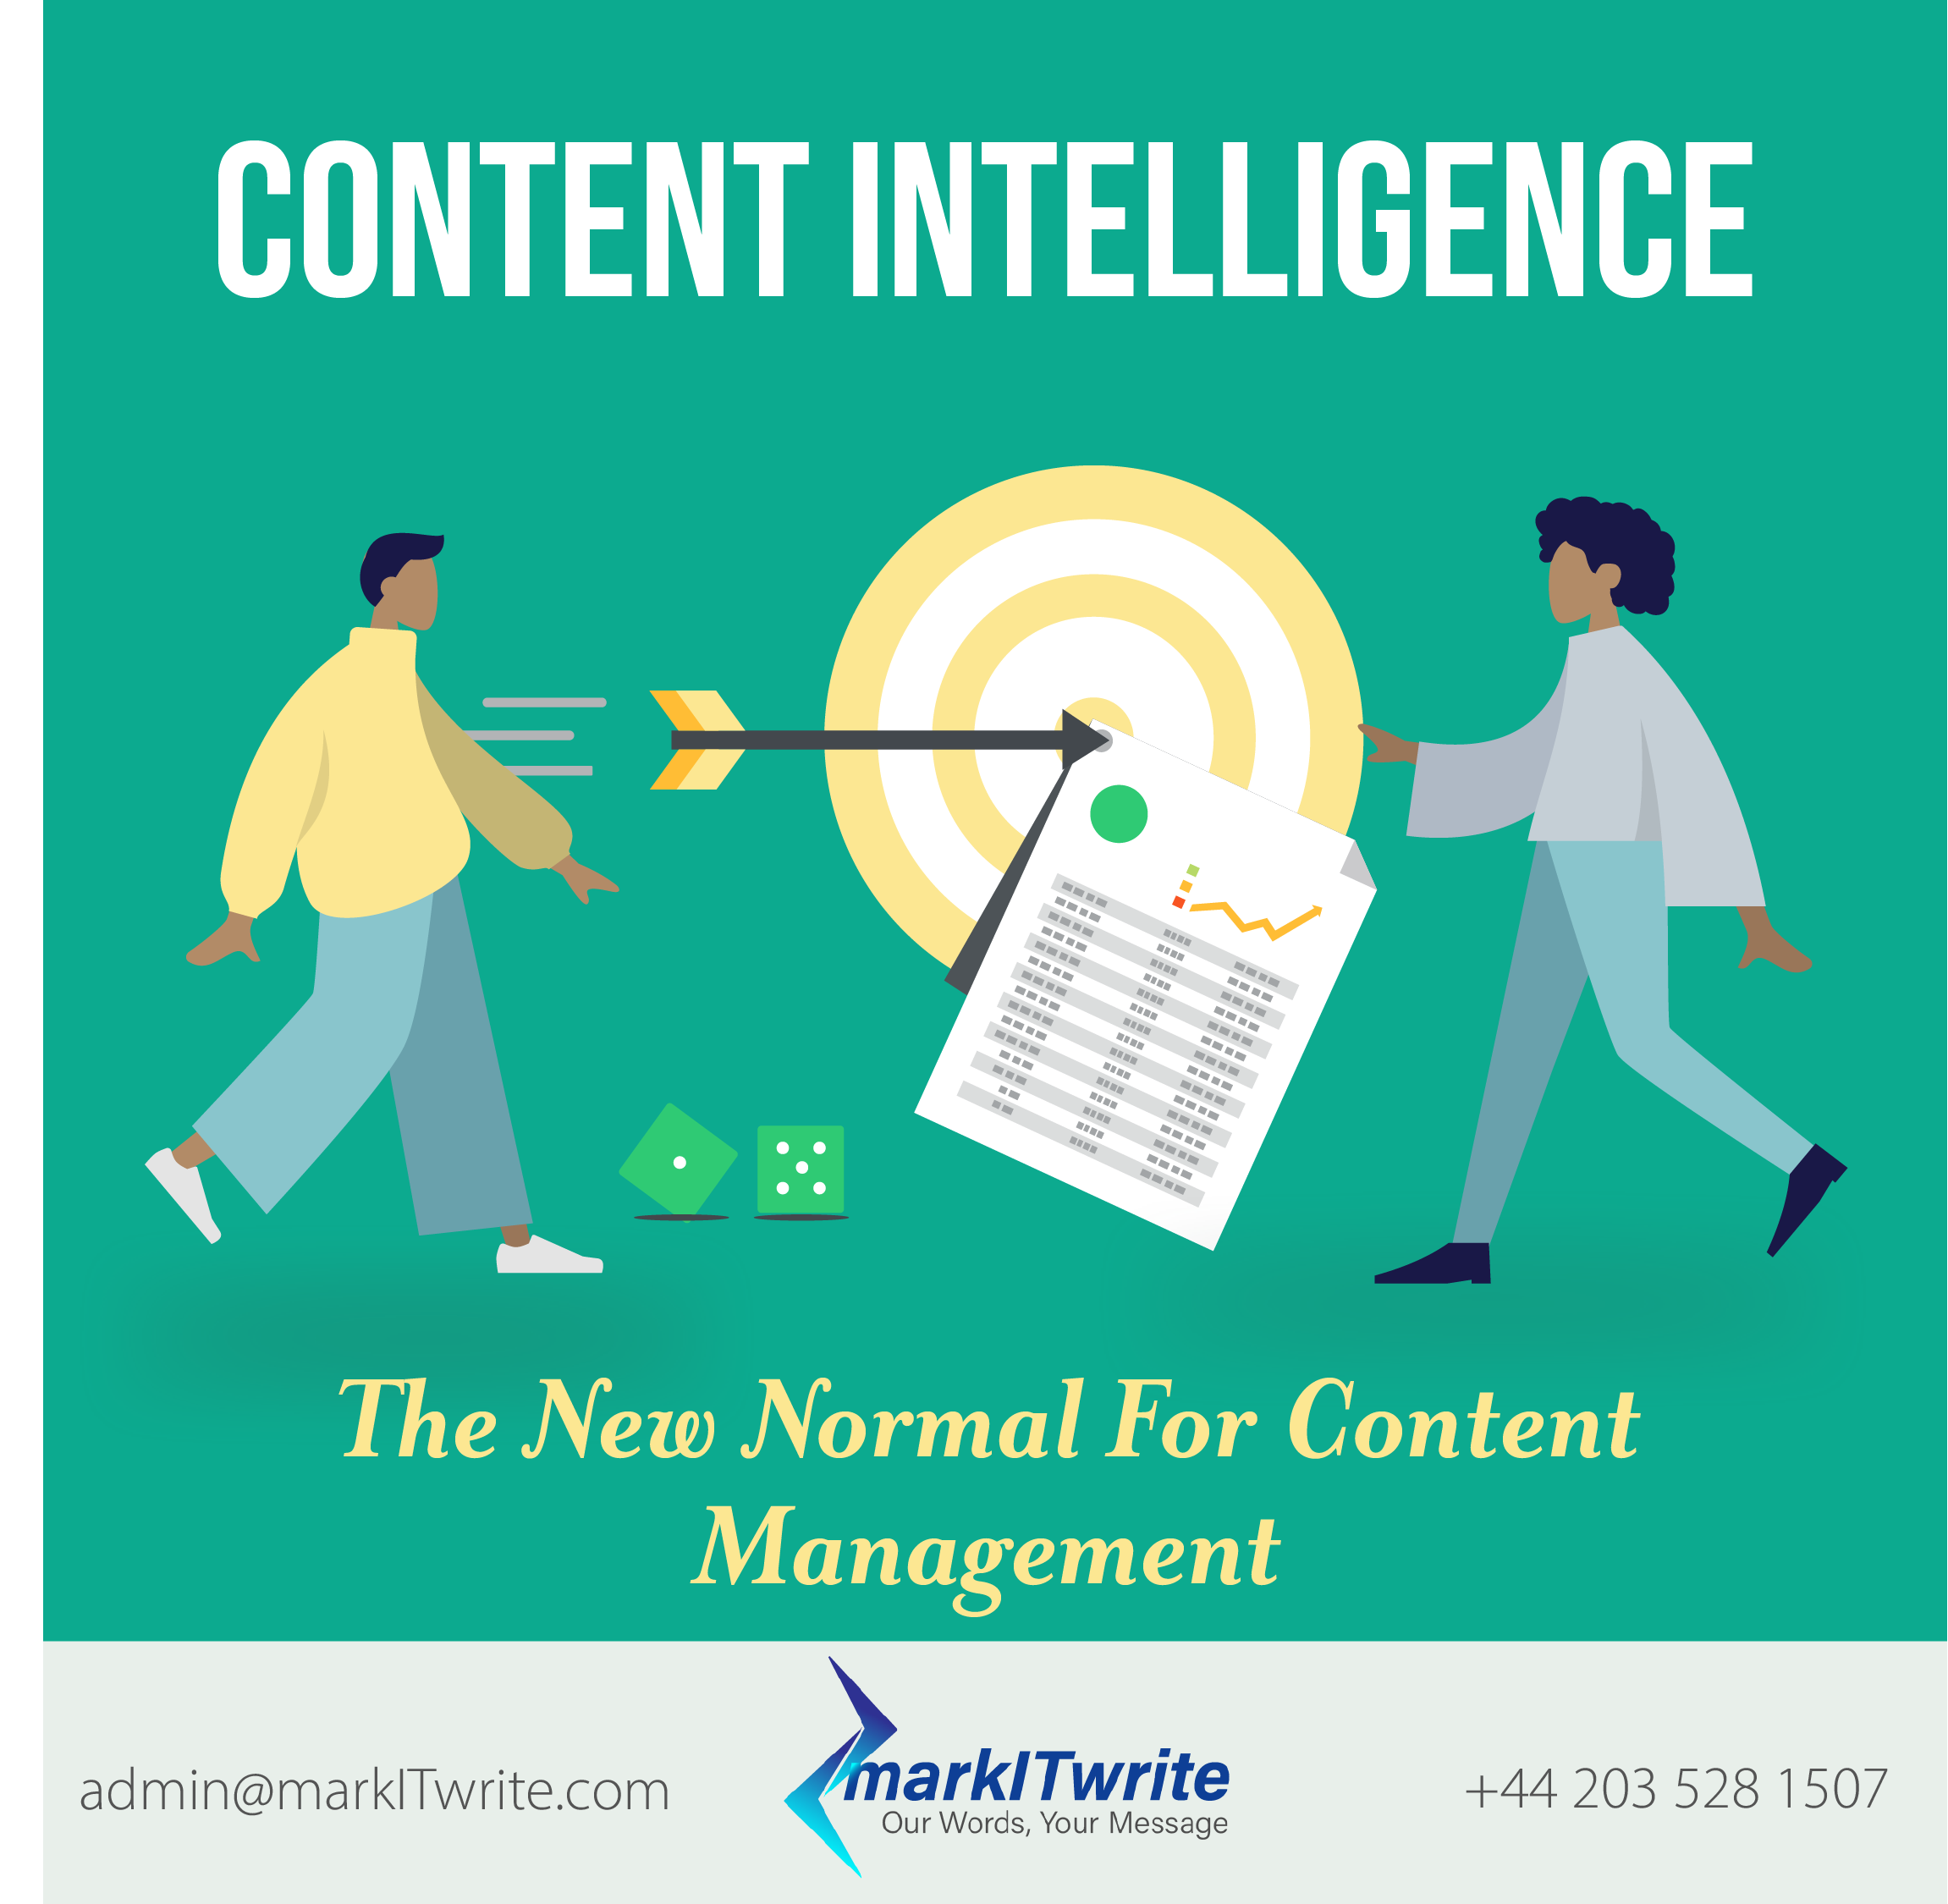 Content Intelligence – The New Normal for Content Management